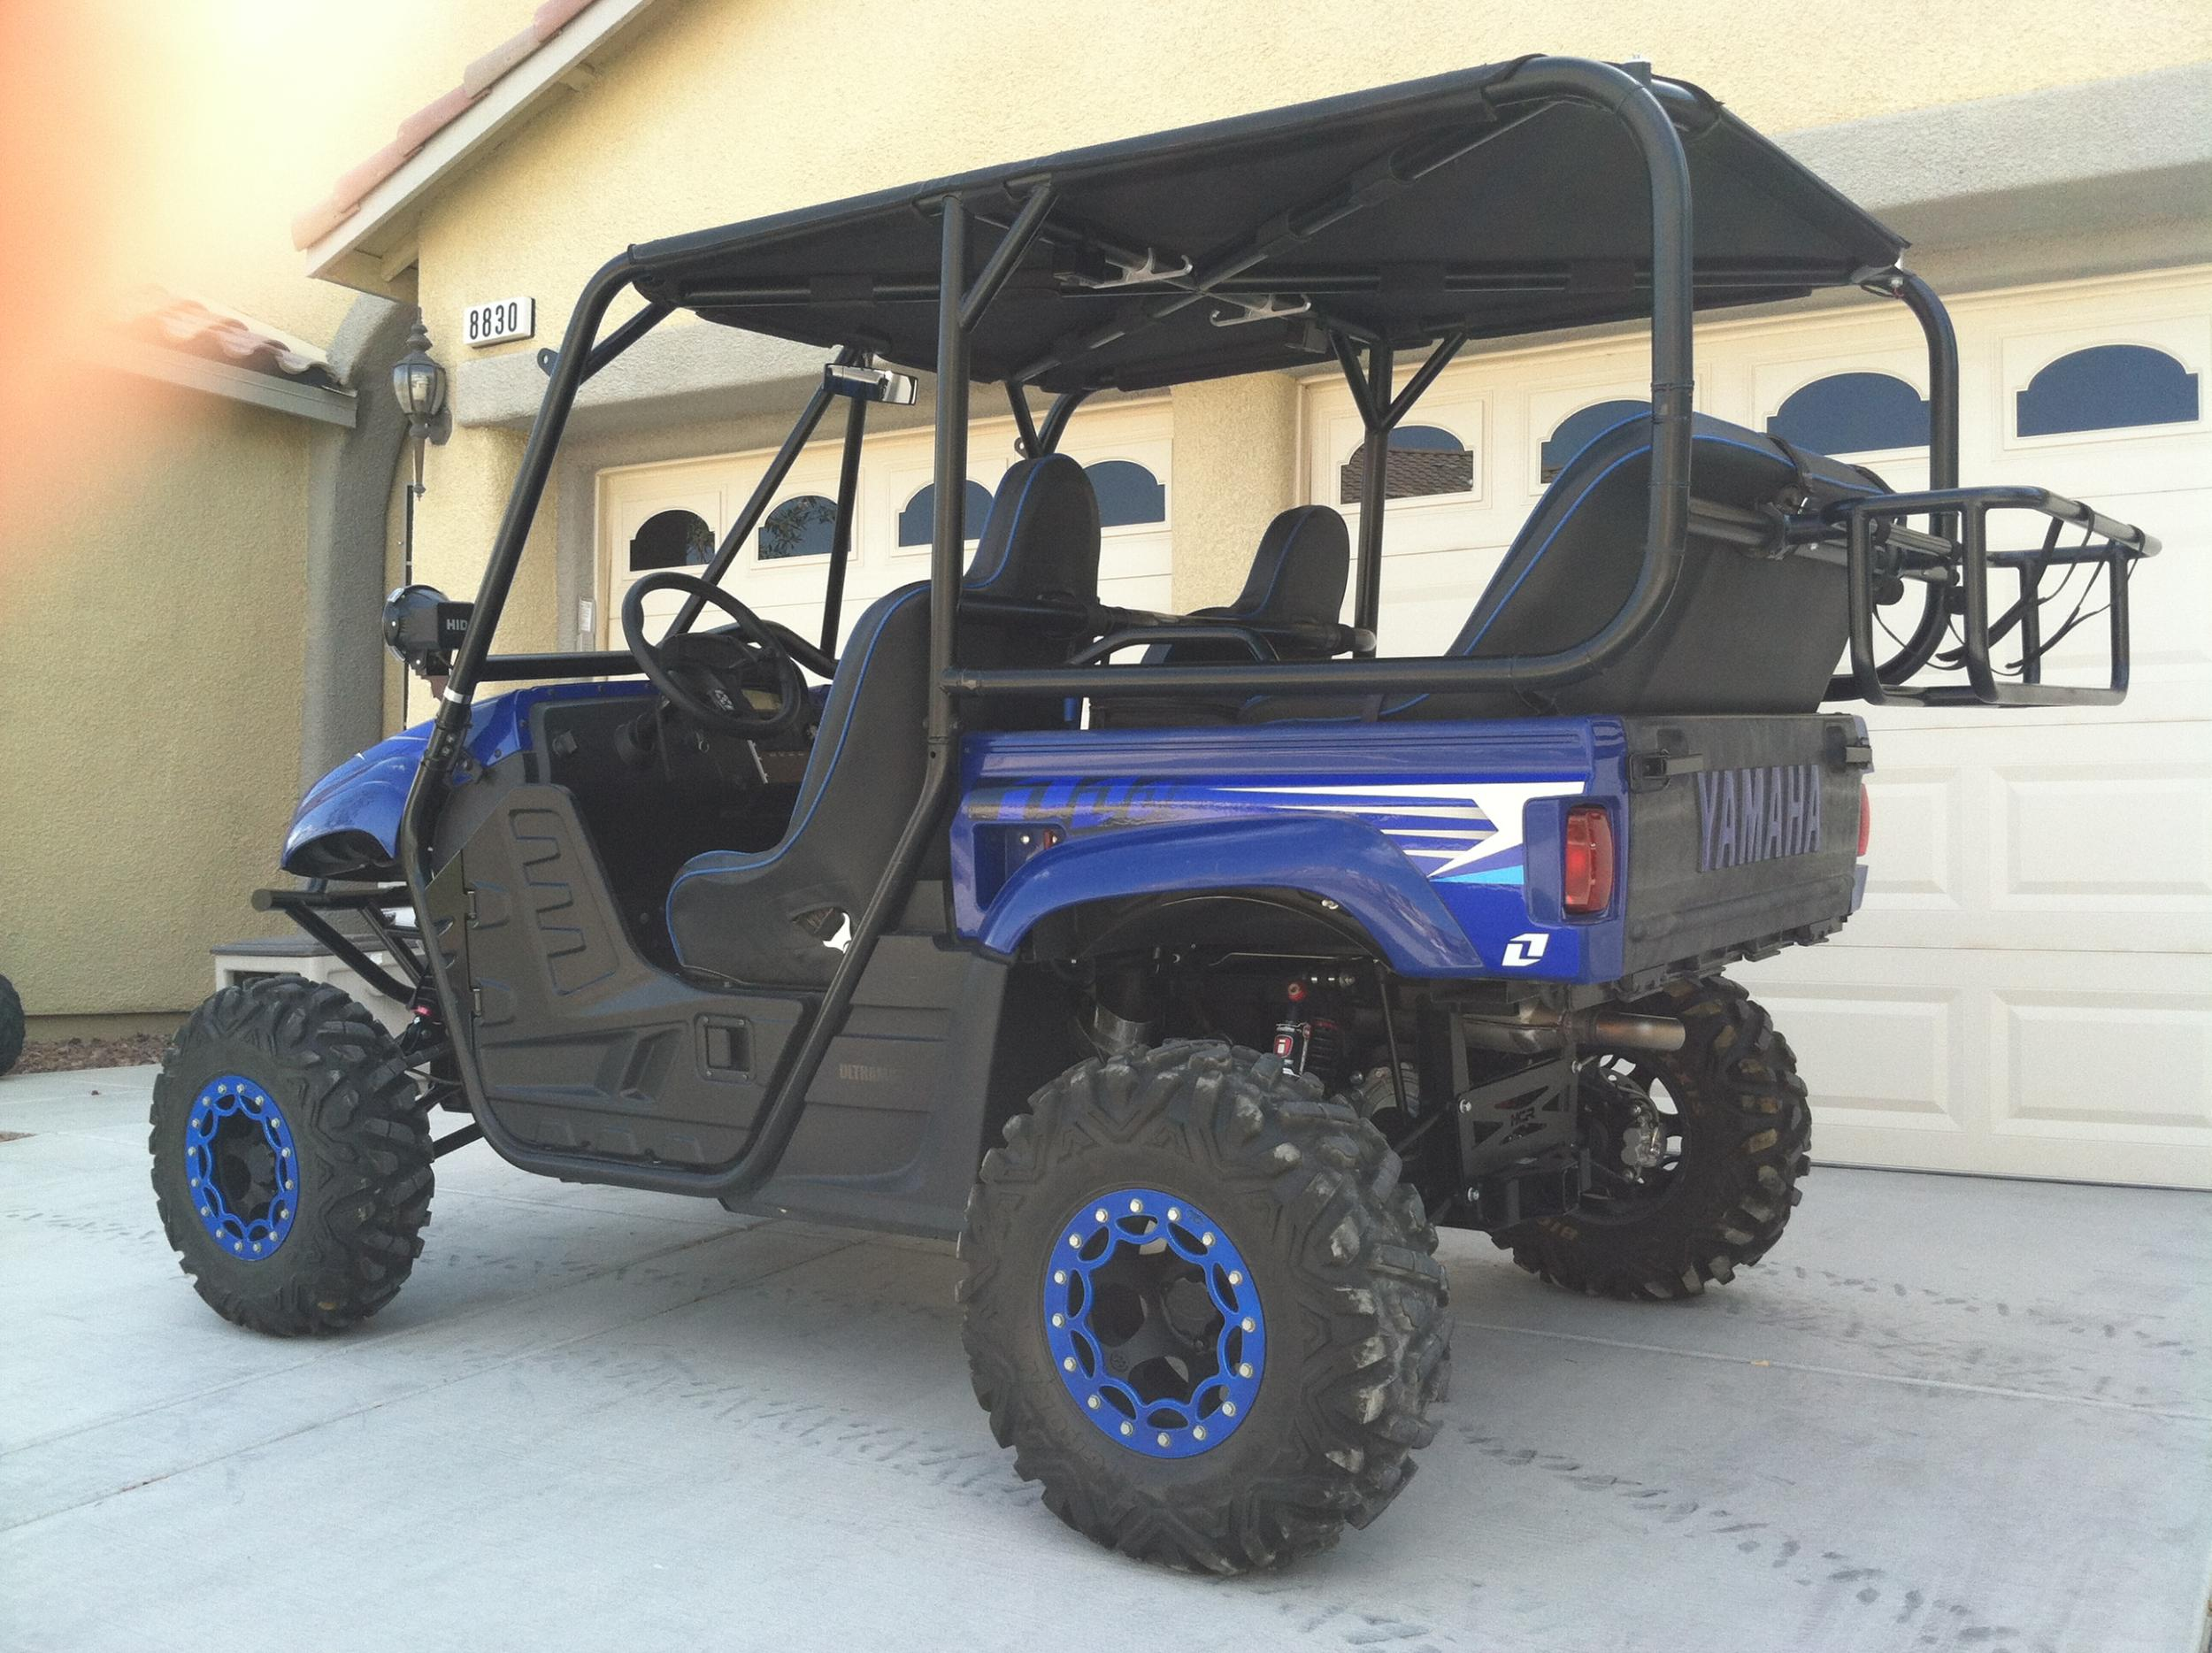 2008 yamaha rhino four seater 10 000 side x sides for sale dumont dune riders. Black Bedroom Furniture Sets. Home Design Ideas